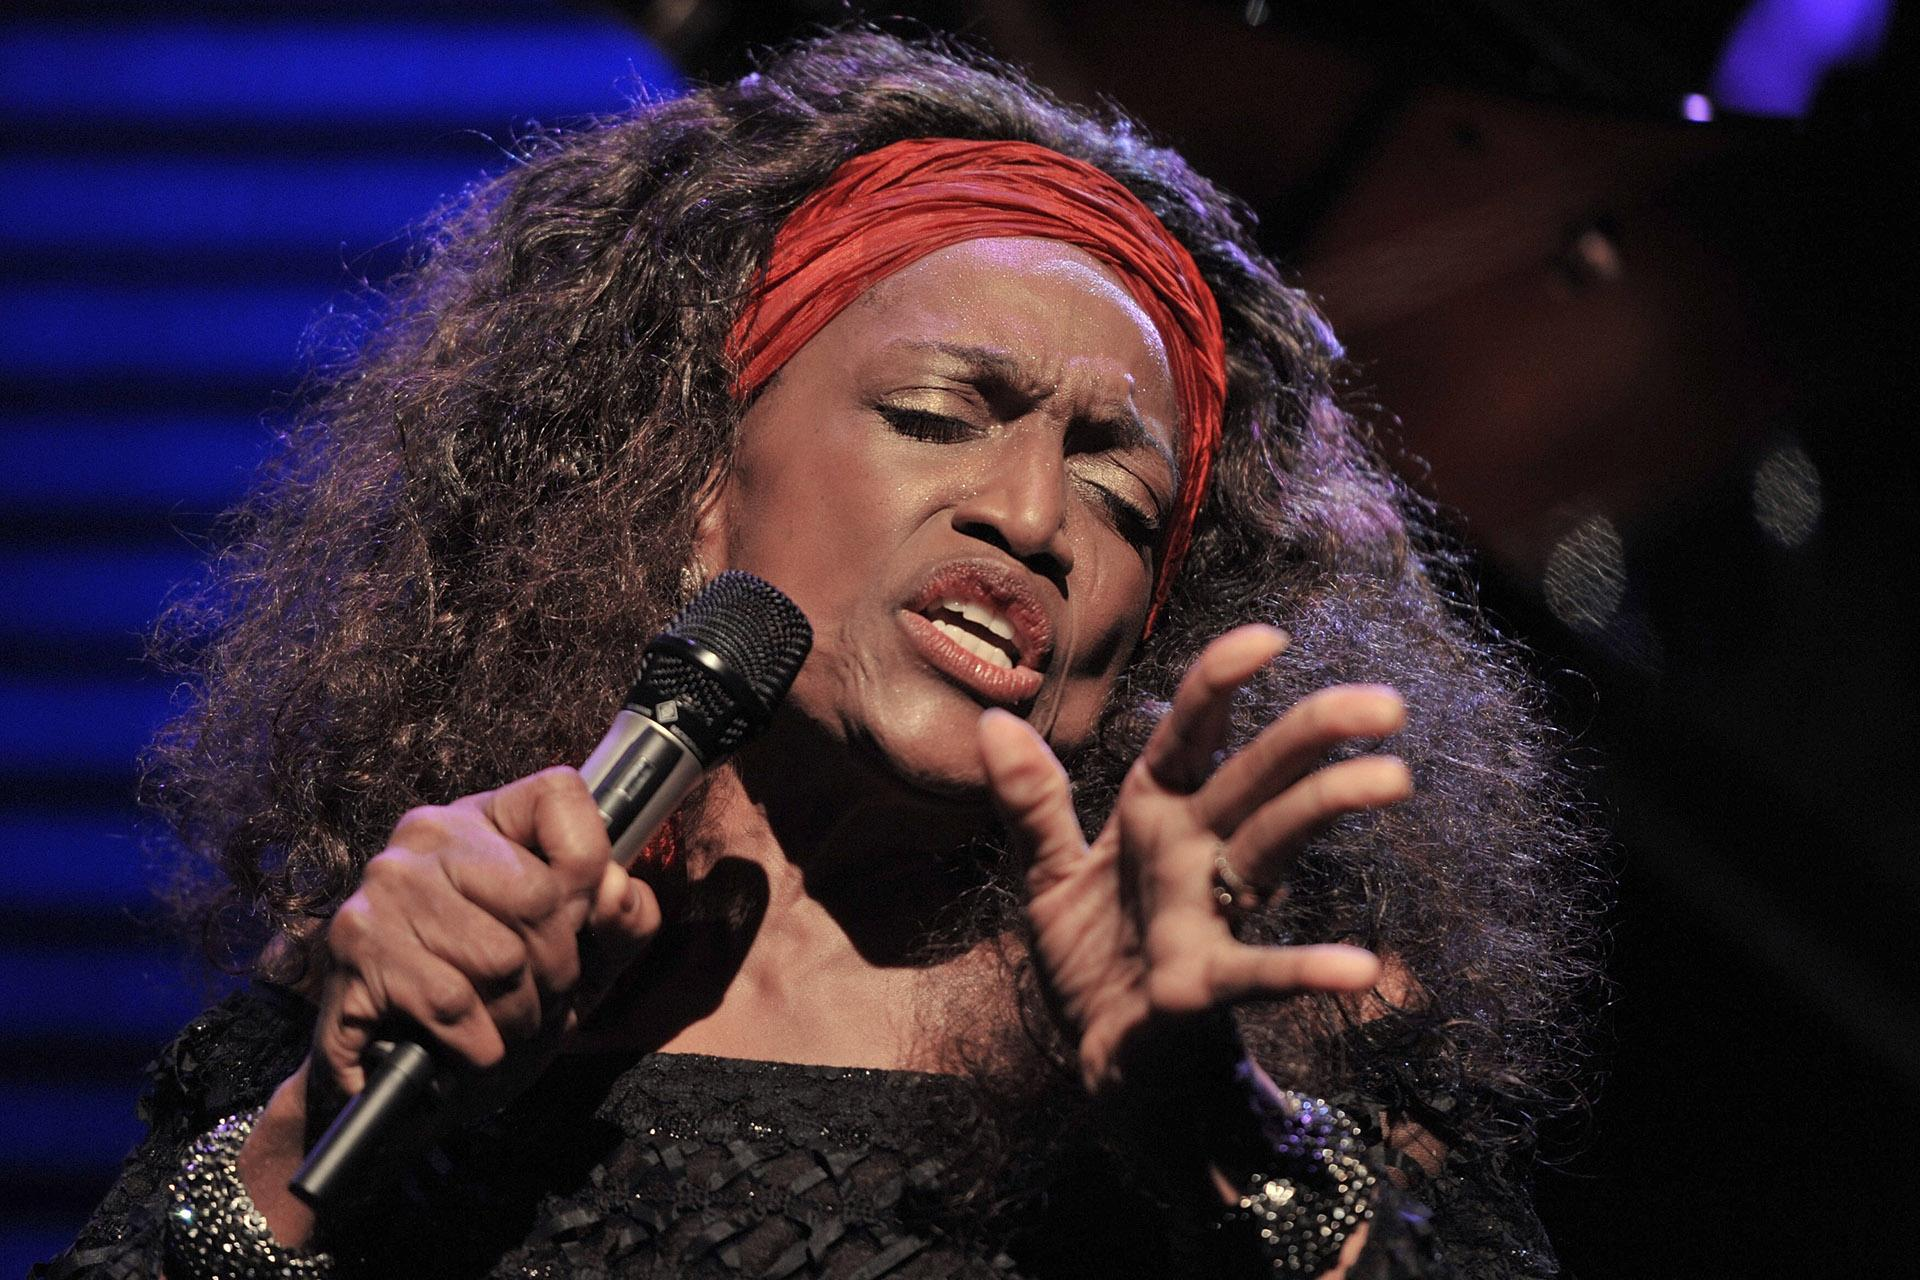 This July 4, 2010 file photo shows American opera singer Jessye Norman performing on the Stravinski Hall stage at the 44th Montreux Jazz Festival, in Montreux, Switzerland. (AP Photo / Keystone / Dominic Favre, File)